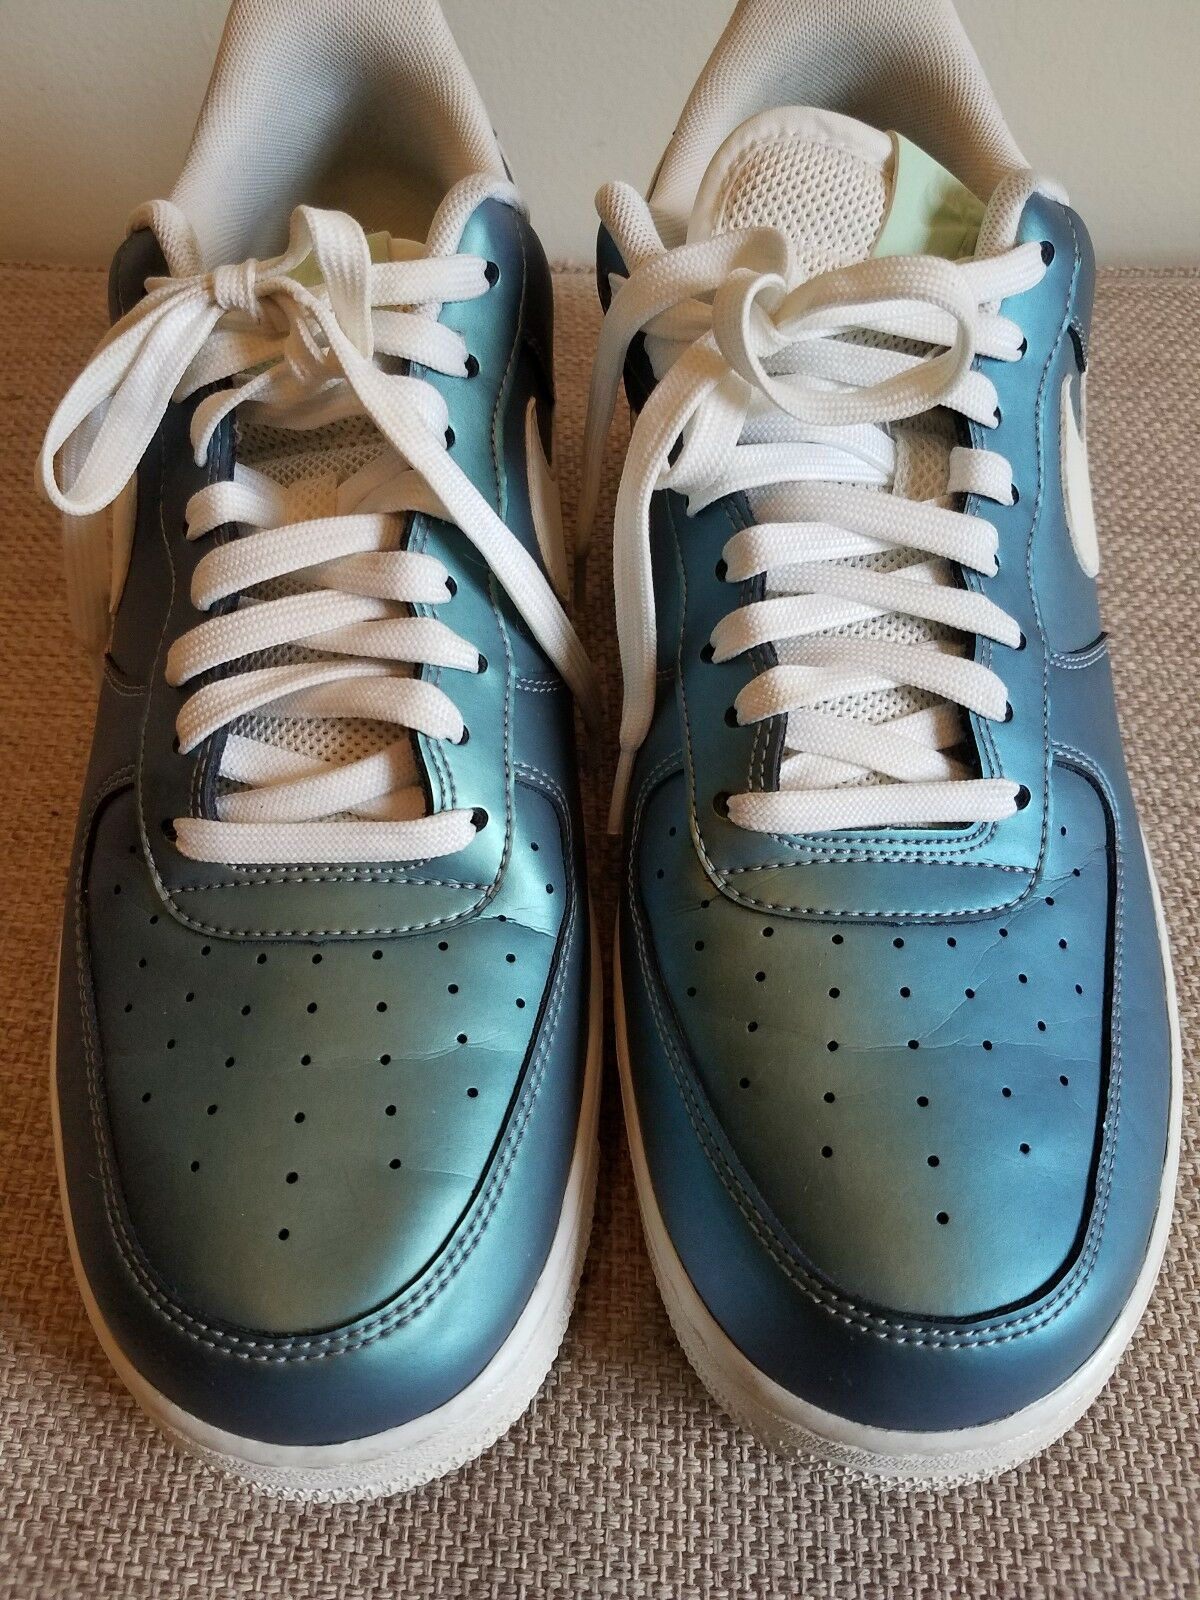 Men's Nike Turquoise Metallic Leather Lace-Up Casual shoes,  Size 12 Medium